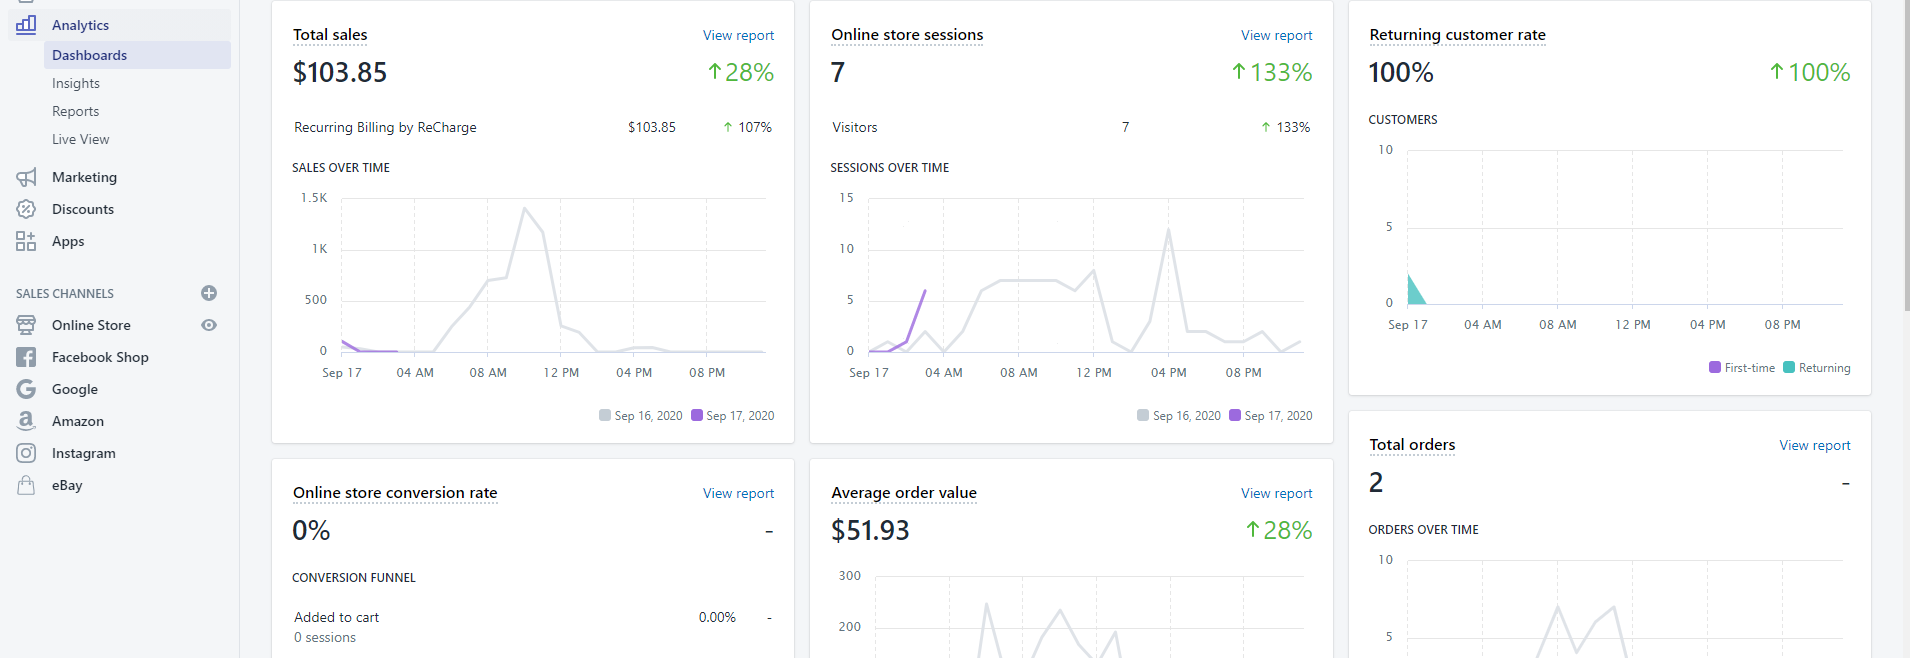 Analyzing The Data Present In The Analytics Section